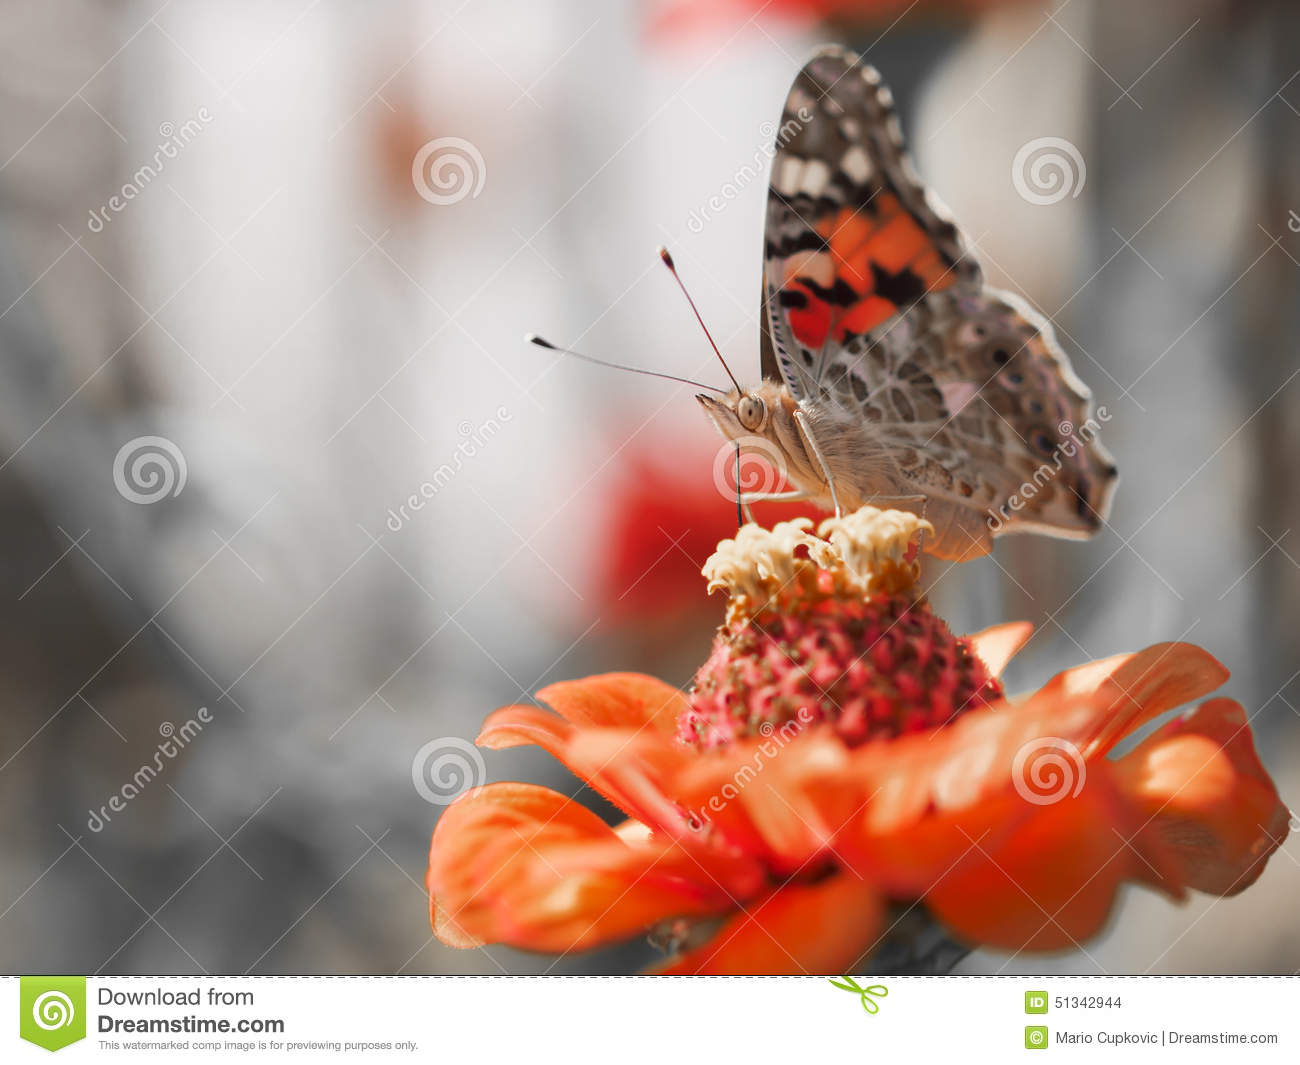 Download Butterfly stock photo. Image of feeding, grass, affectionate - 51342944